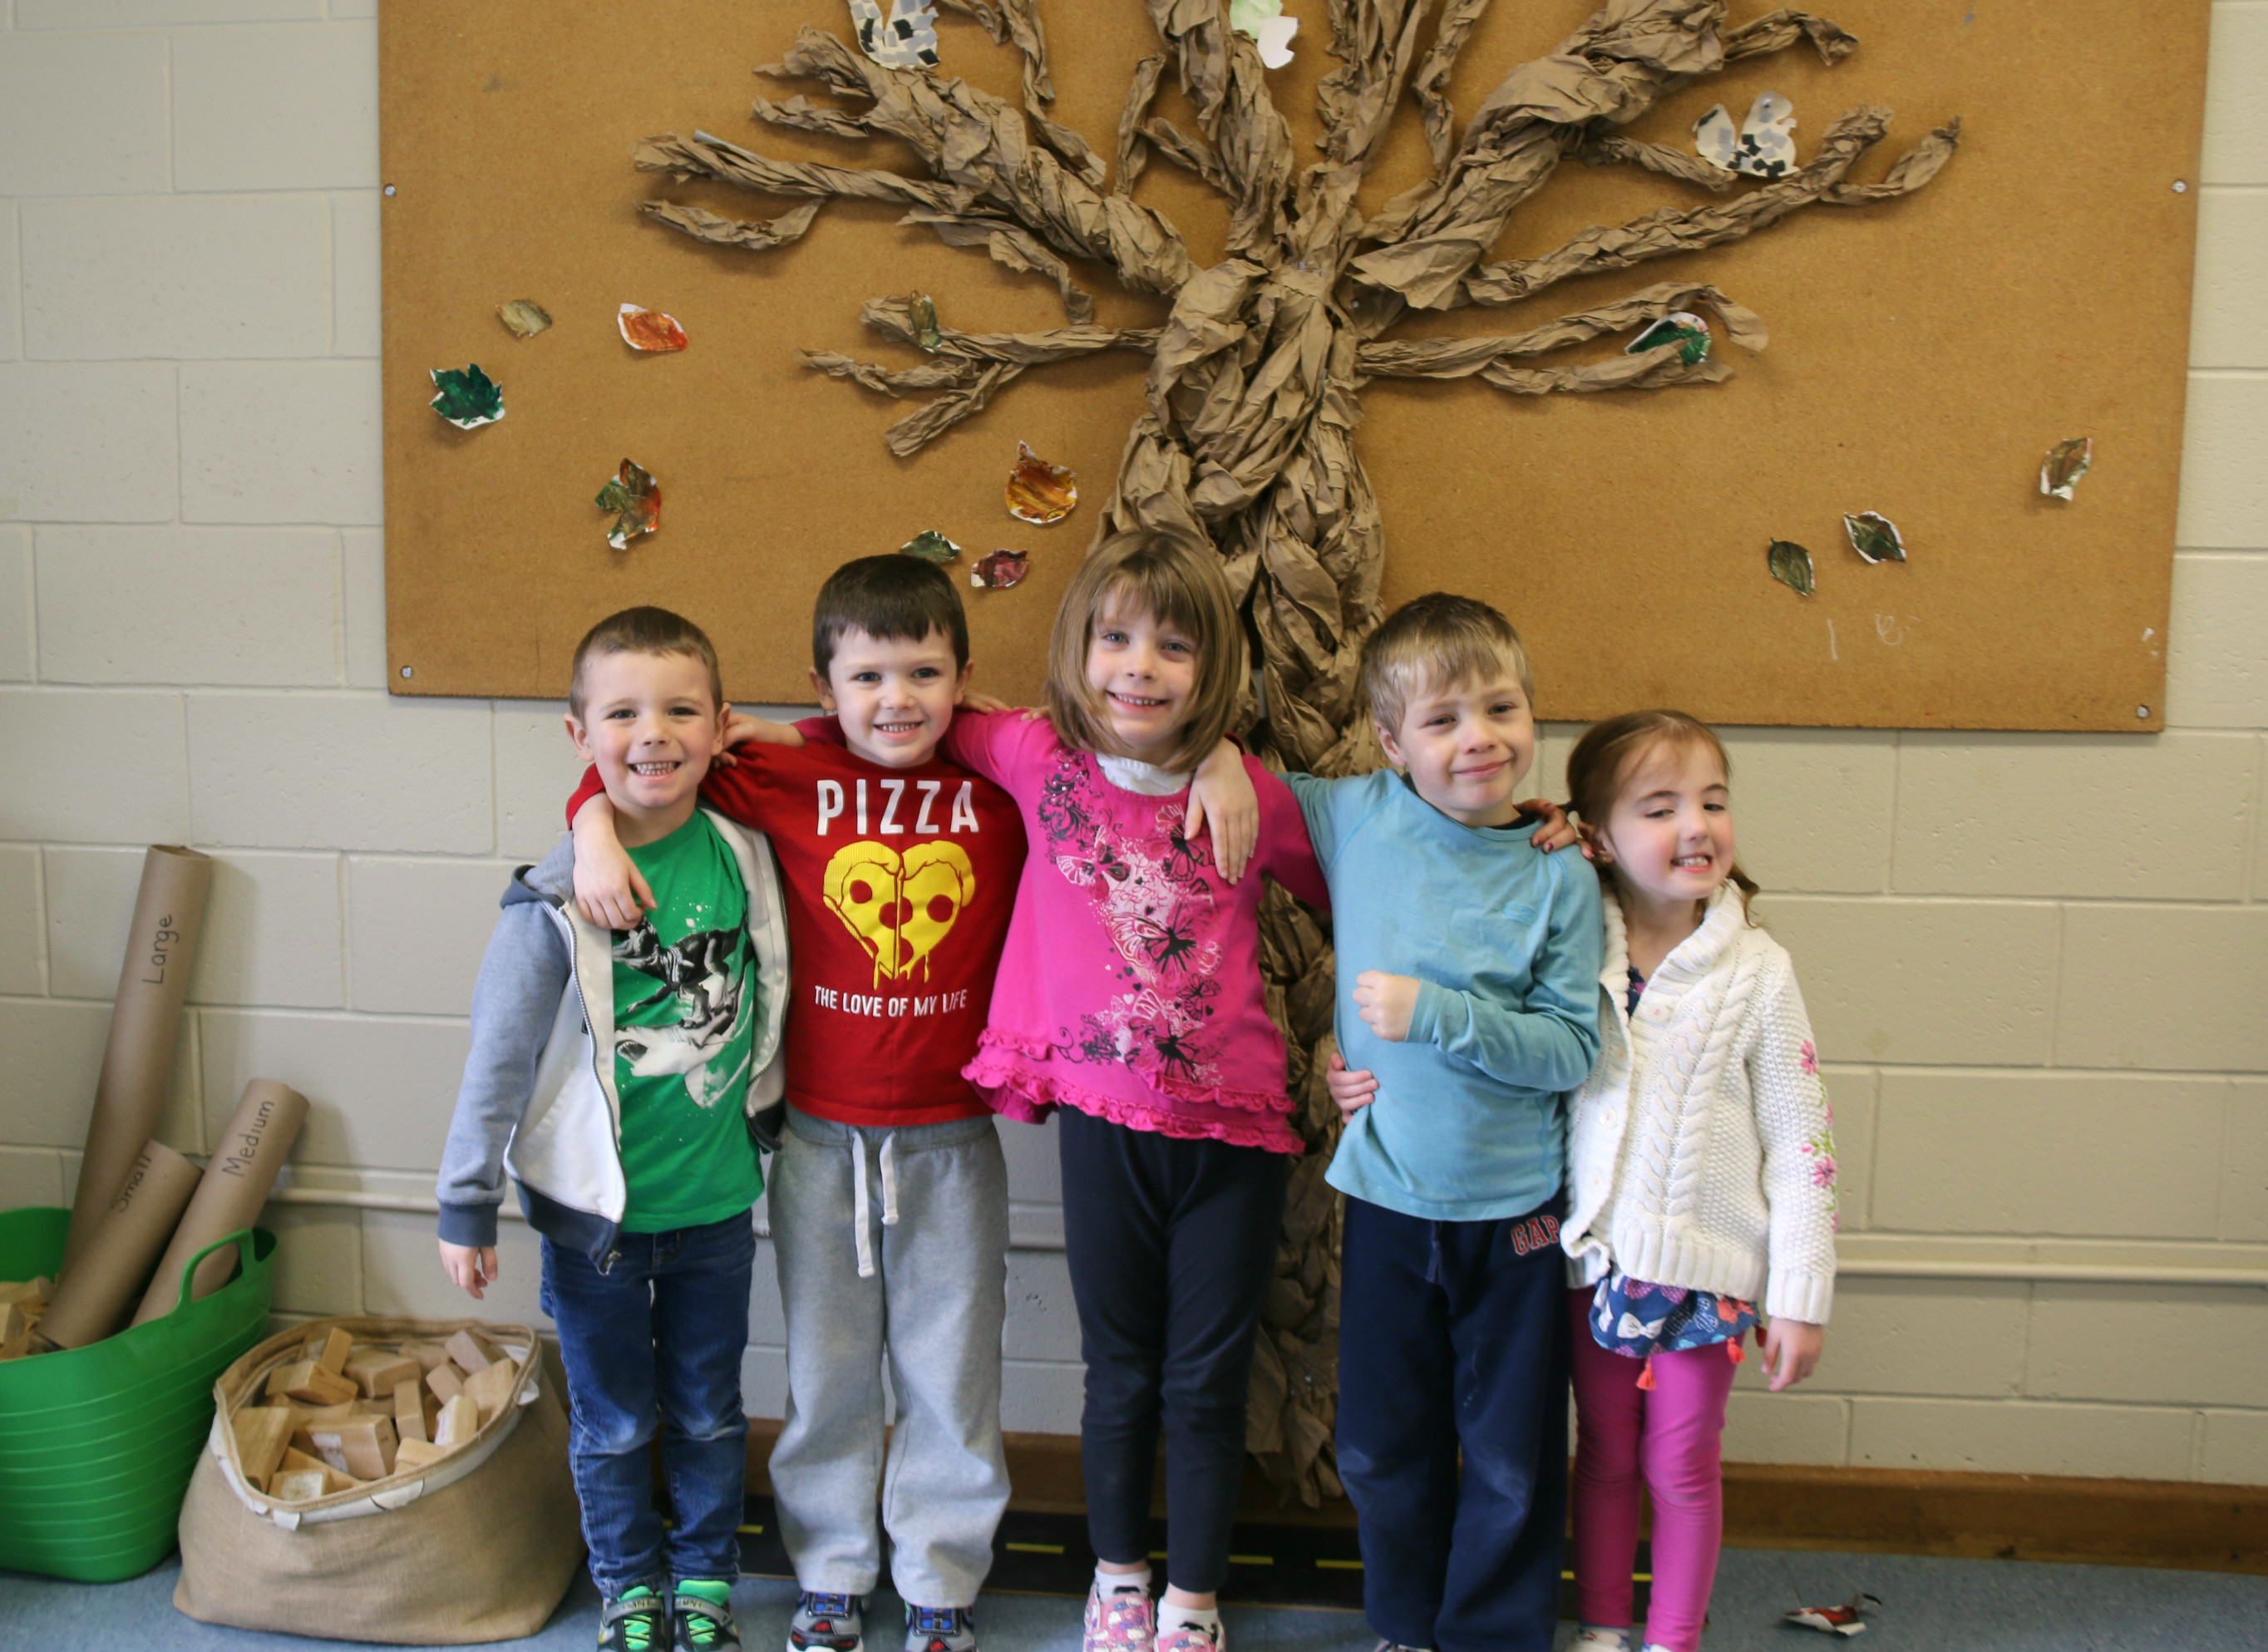 Five kindergarten students standing together